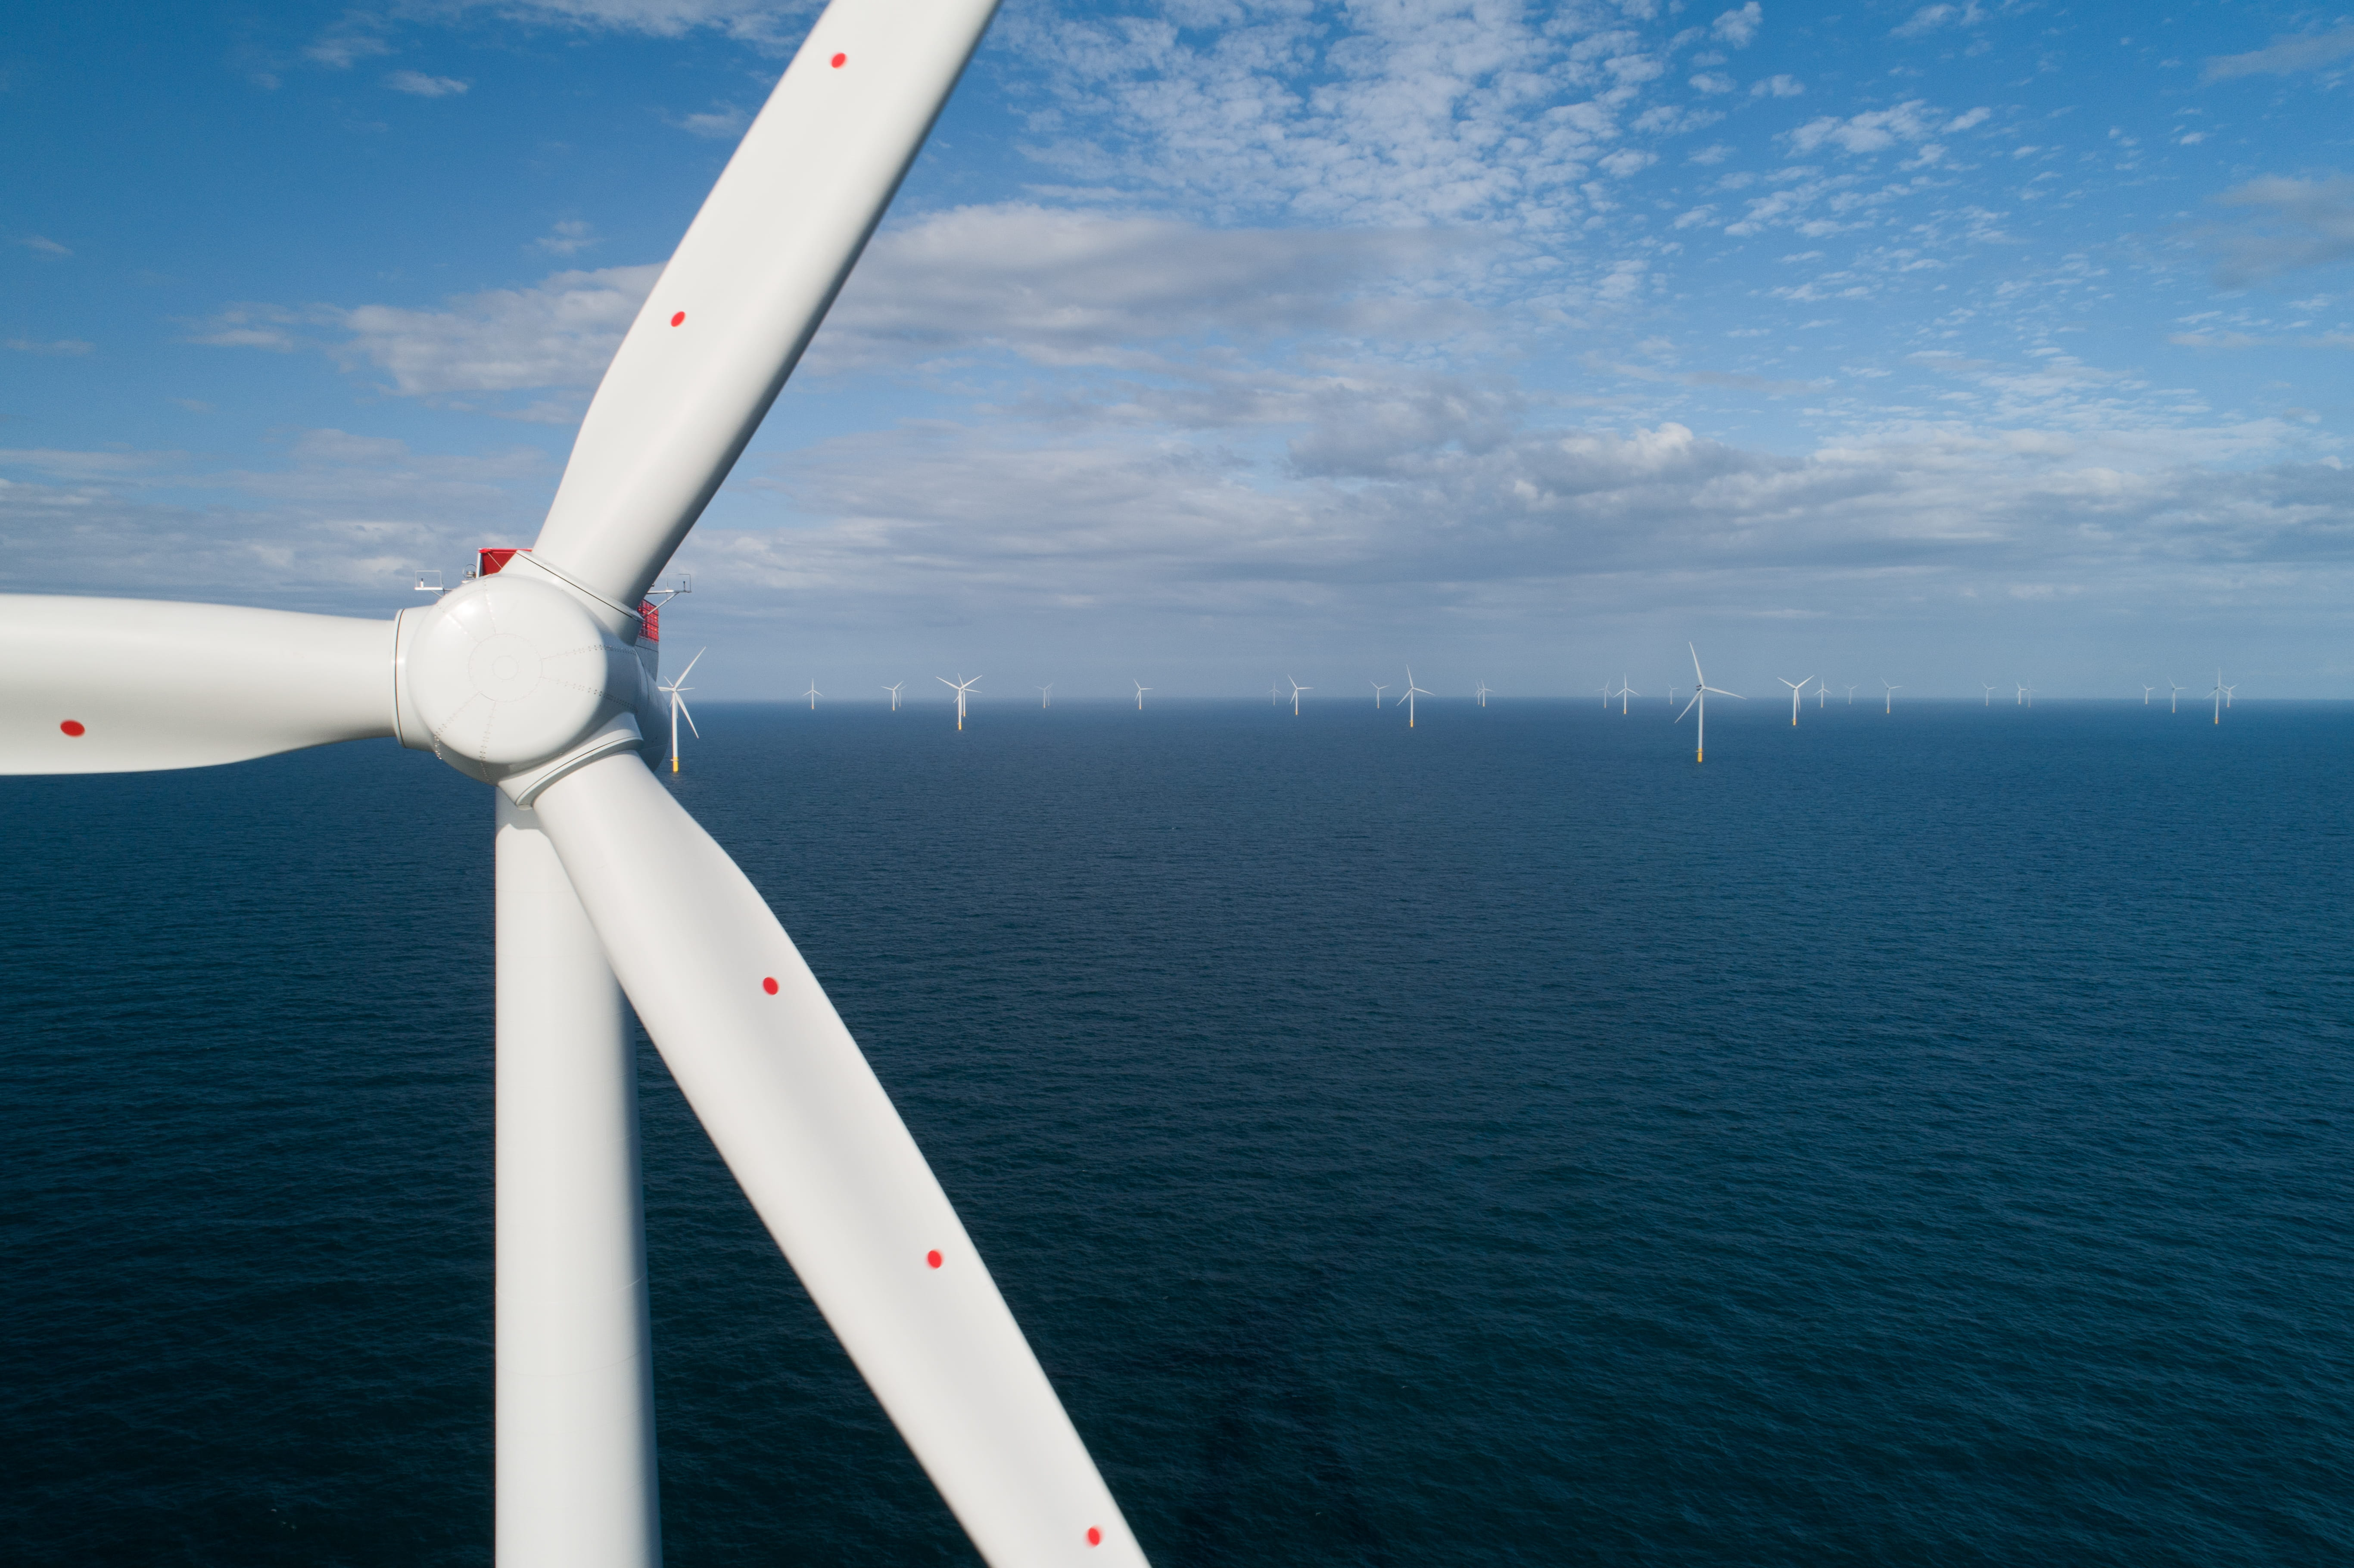 inal turbine installed as world's largest offshore wind farm nears completion